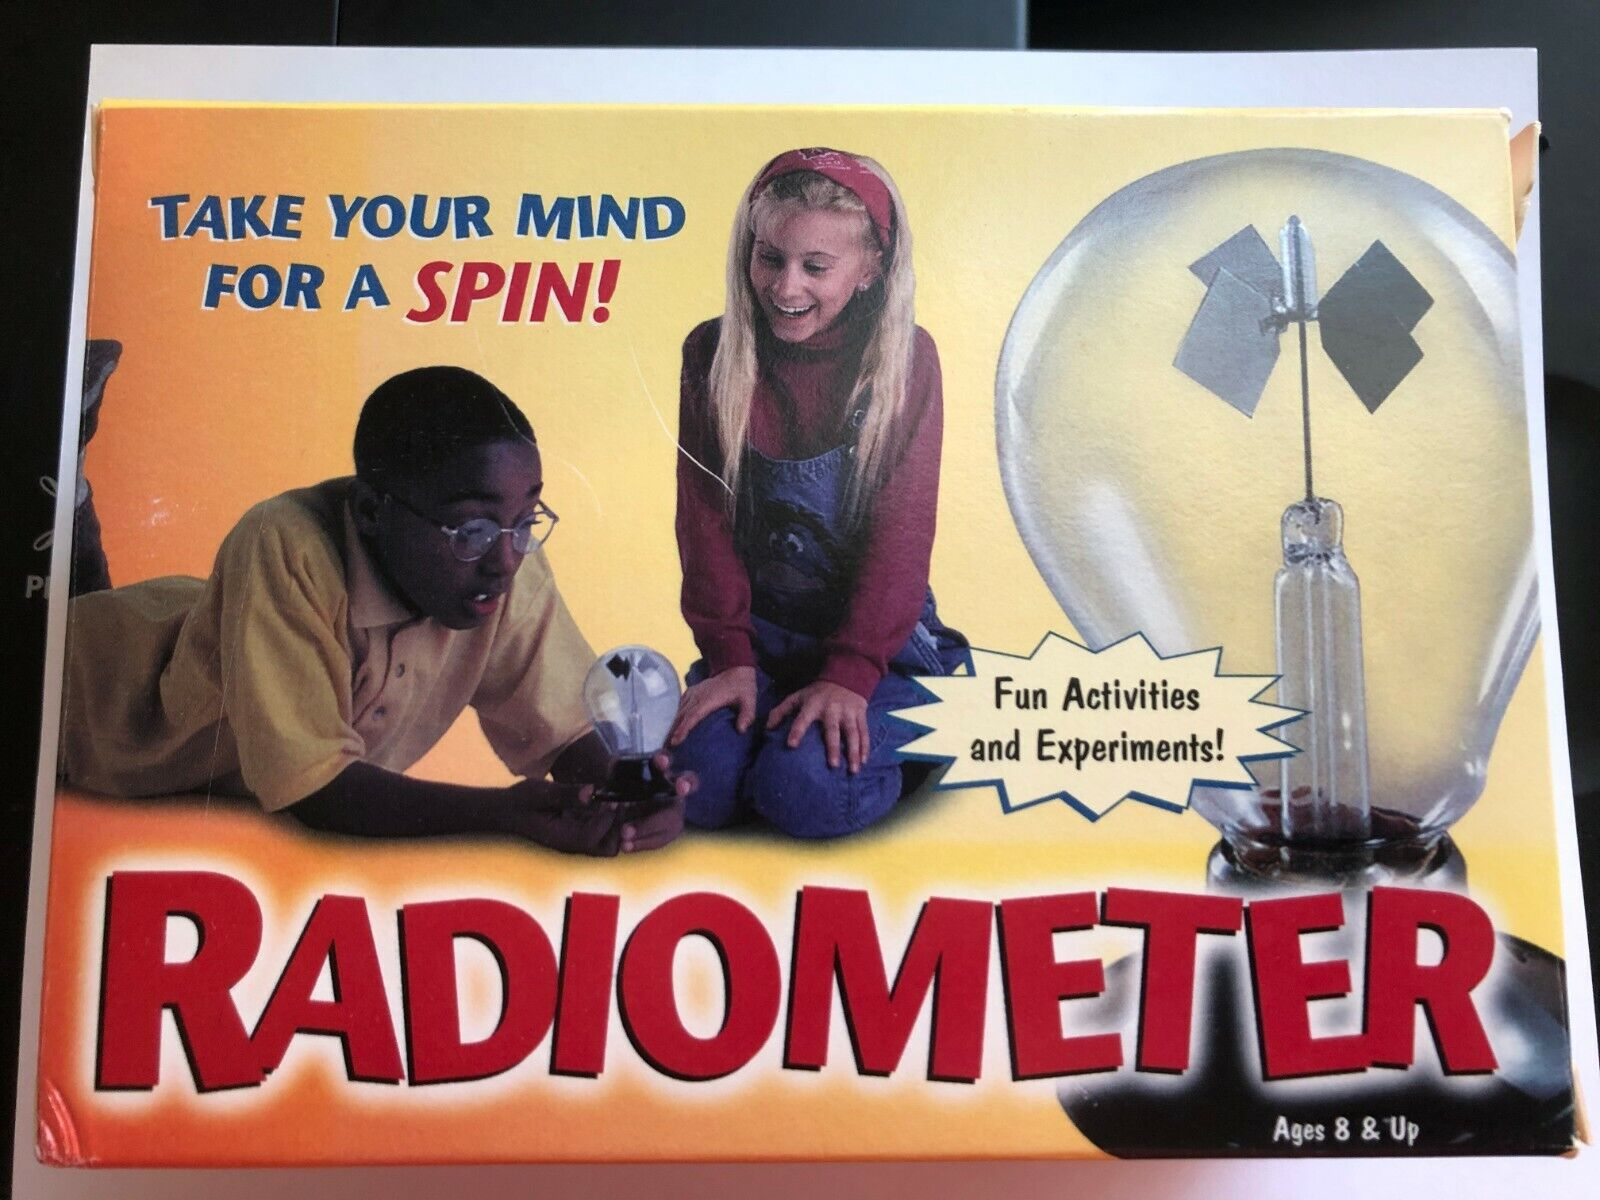 Excellent Fun For Kids Educational Solar Powered Radiometer - $4.80